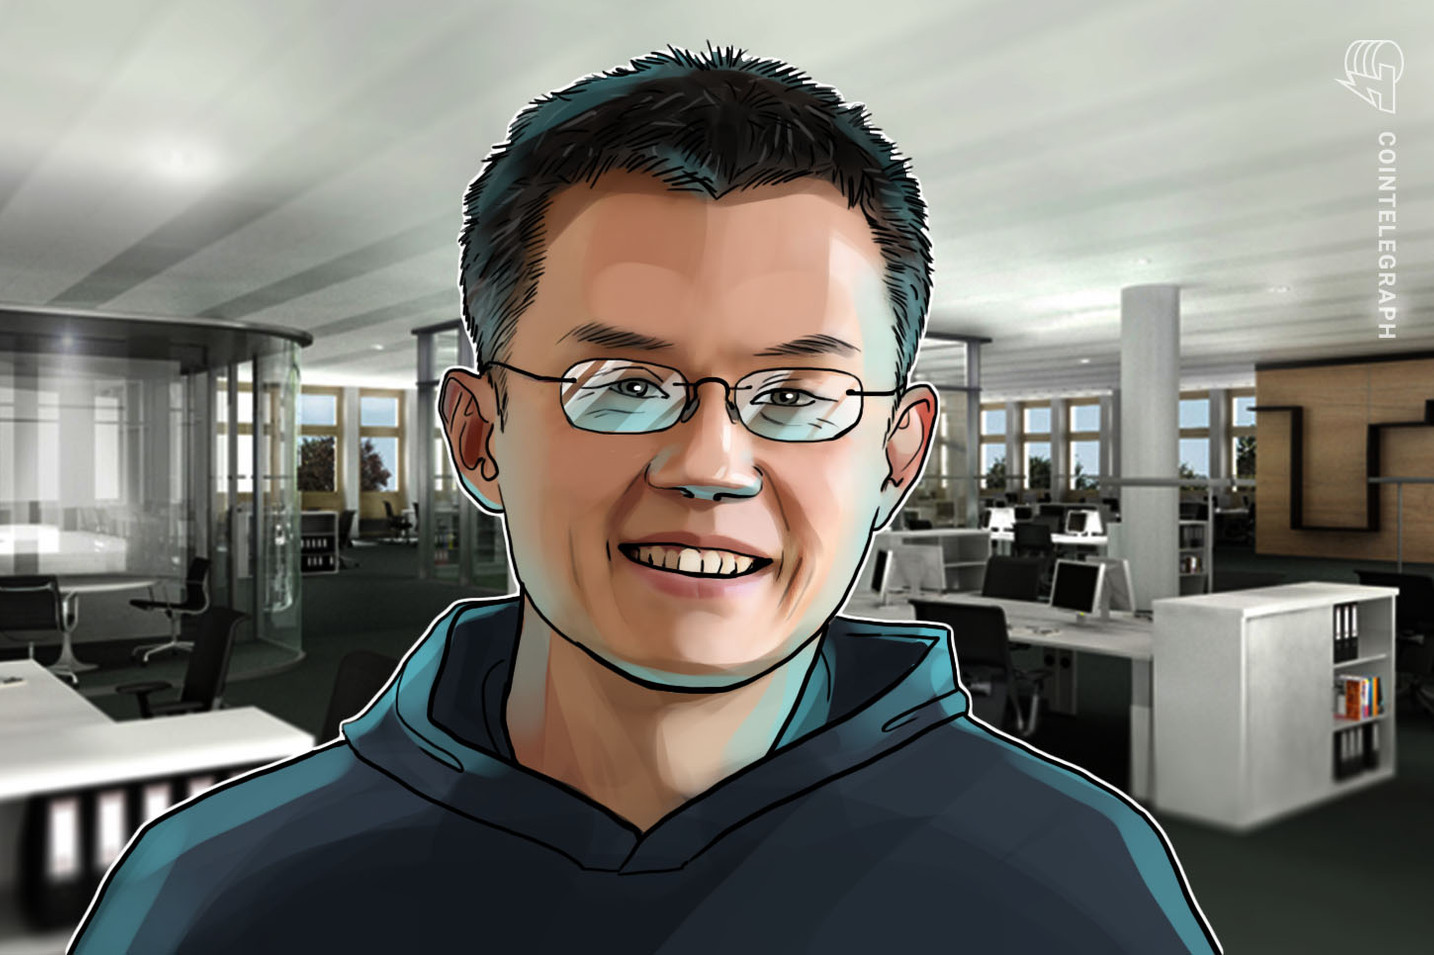 Binance CEO Changpeng Zhao Says Bitcoin Halving Not Priced In Yet